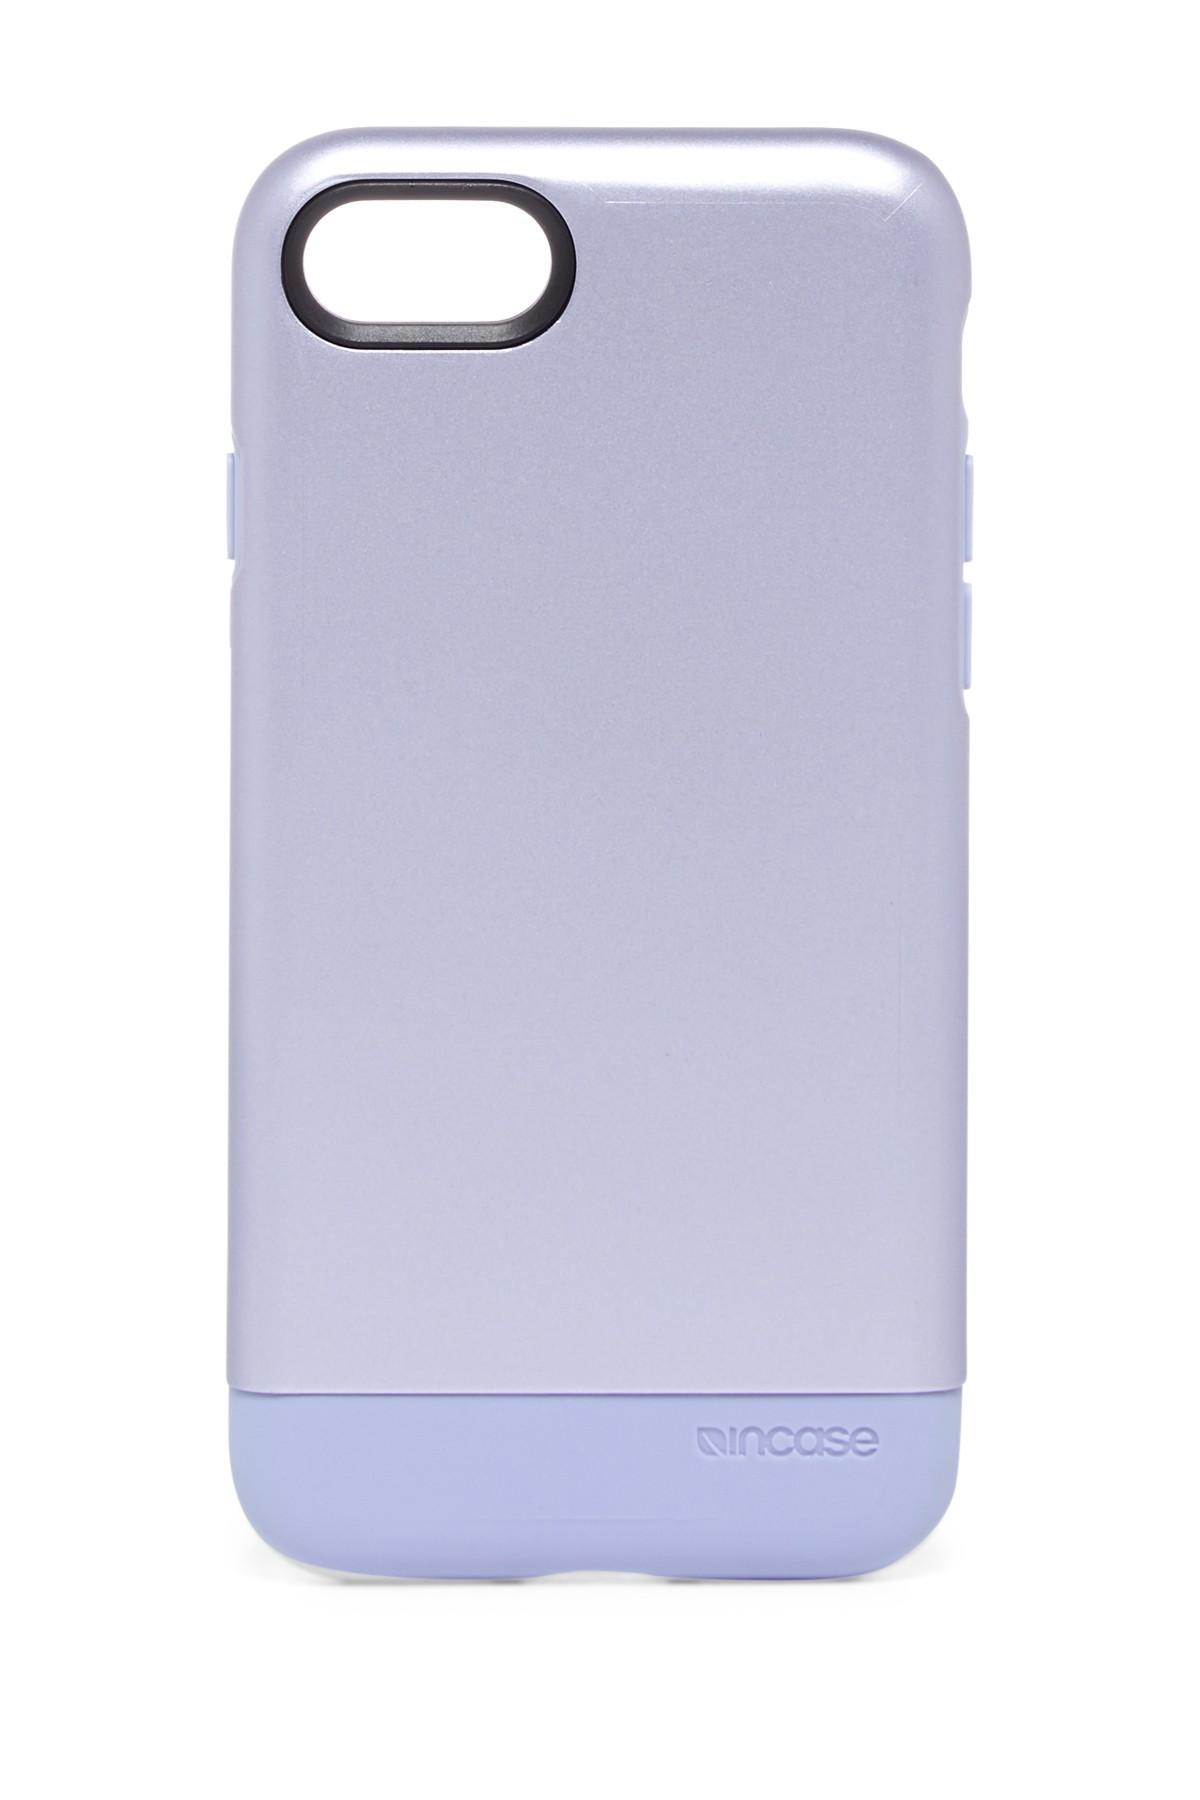 Incase Snap Case Iphone